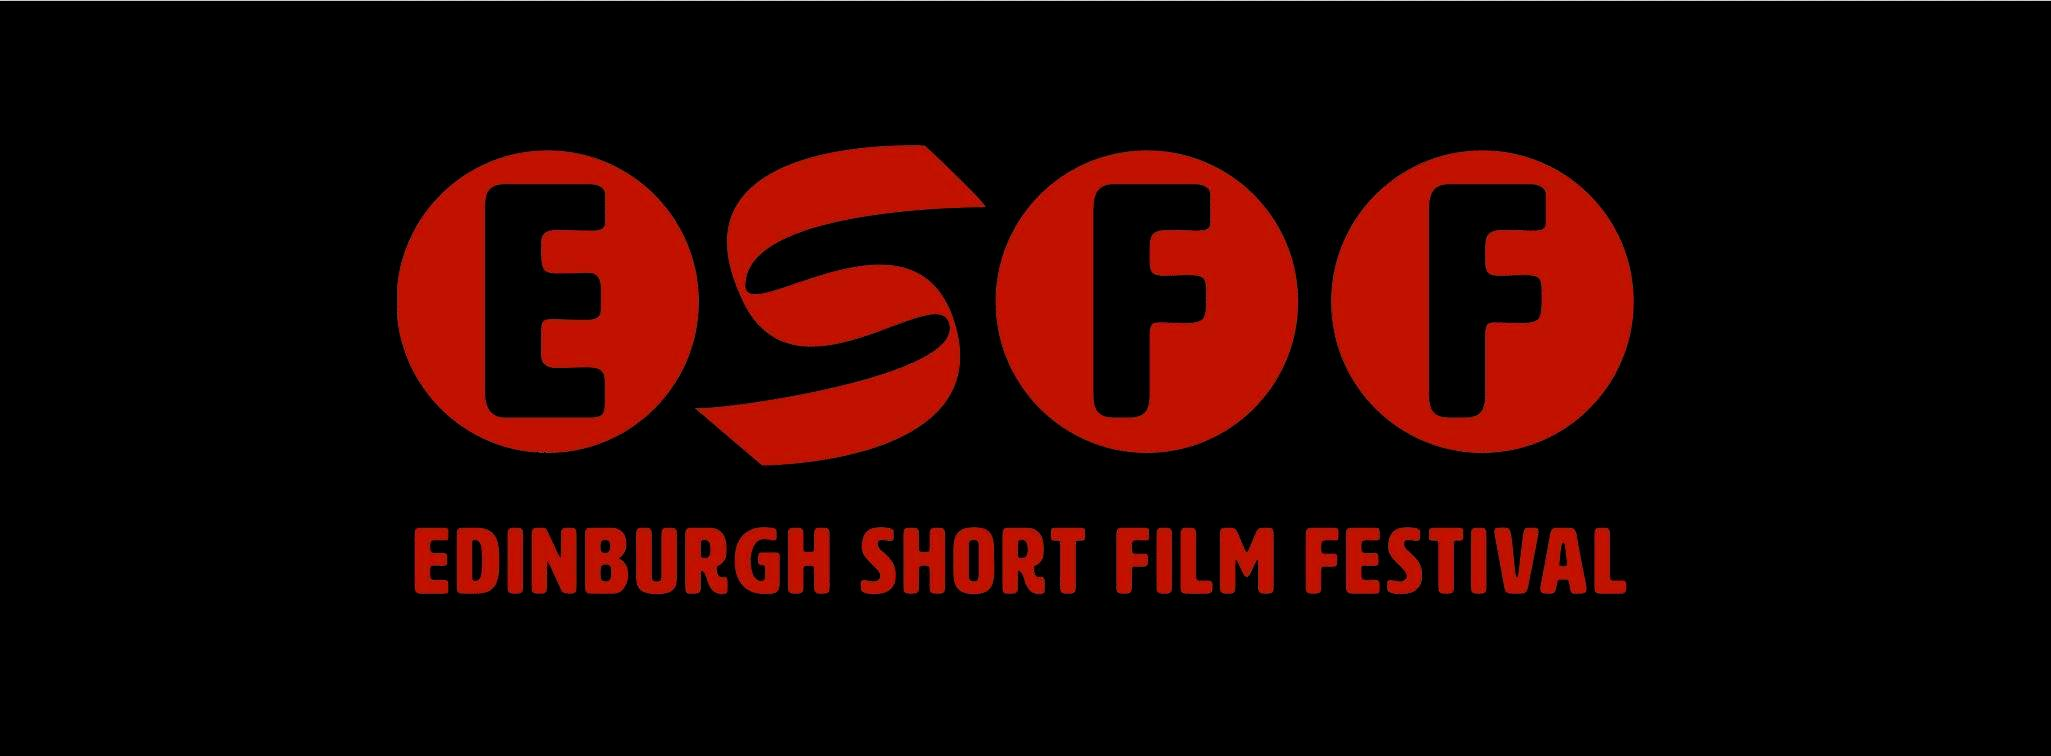 DARKER ESFF LOGO BLACK COLOURED.JPG